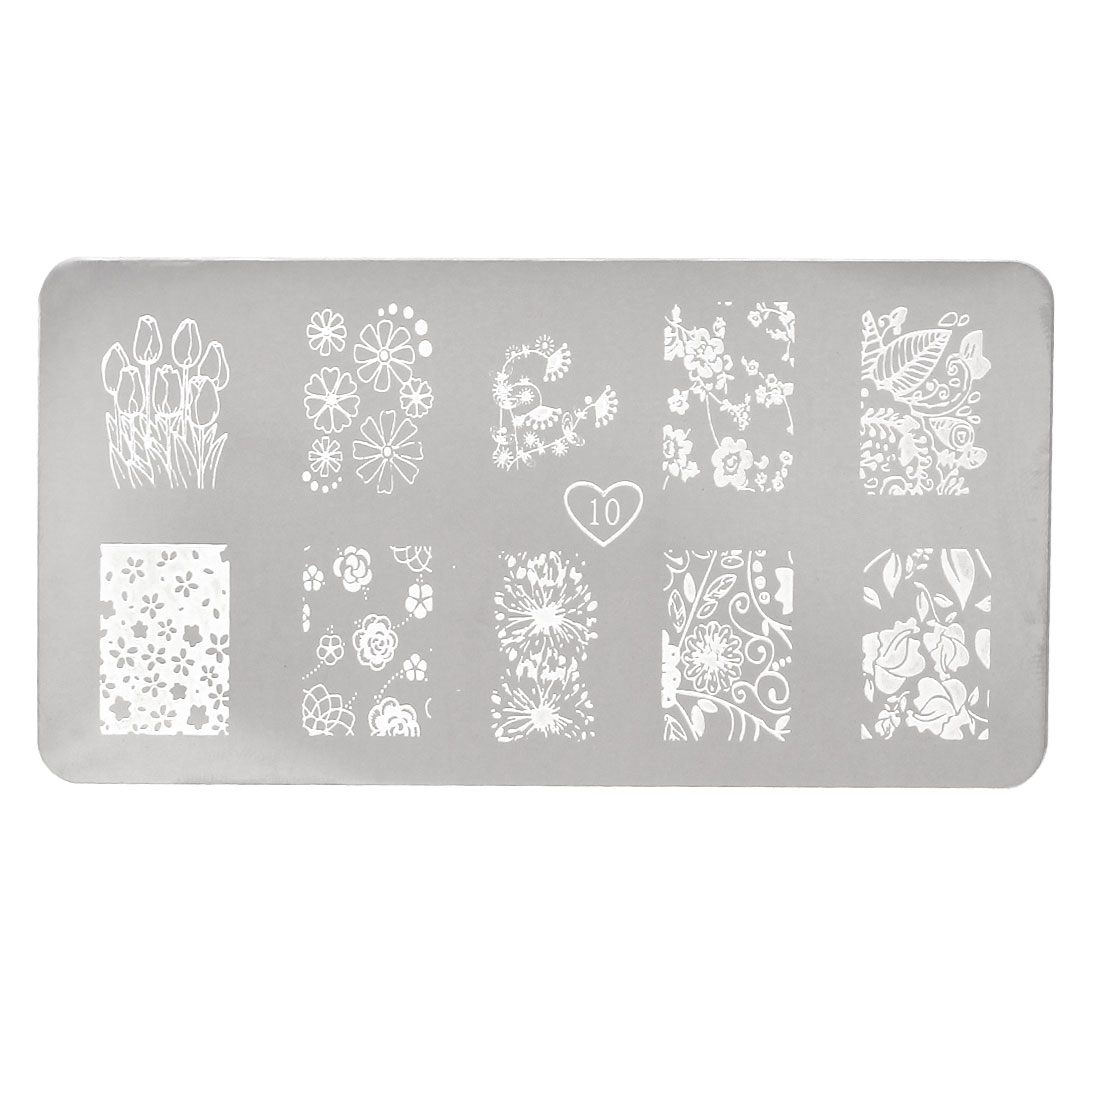 Unique BargainsFingernails Flower Printed Stencil Template Painted Plate Gel Nails Tool 1 Sheet